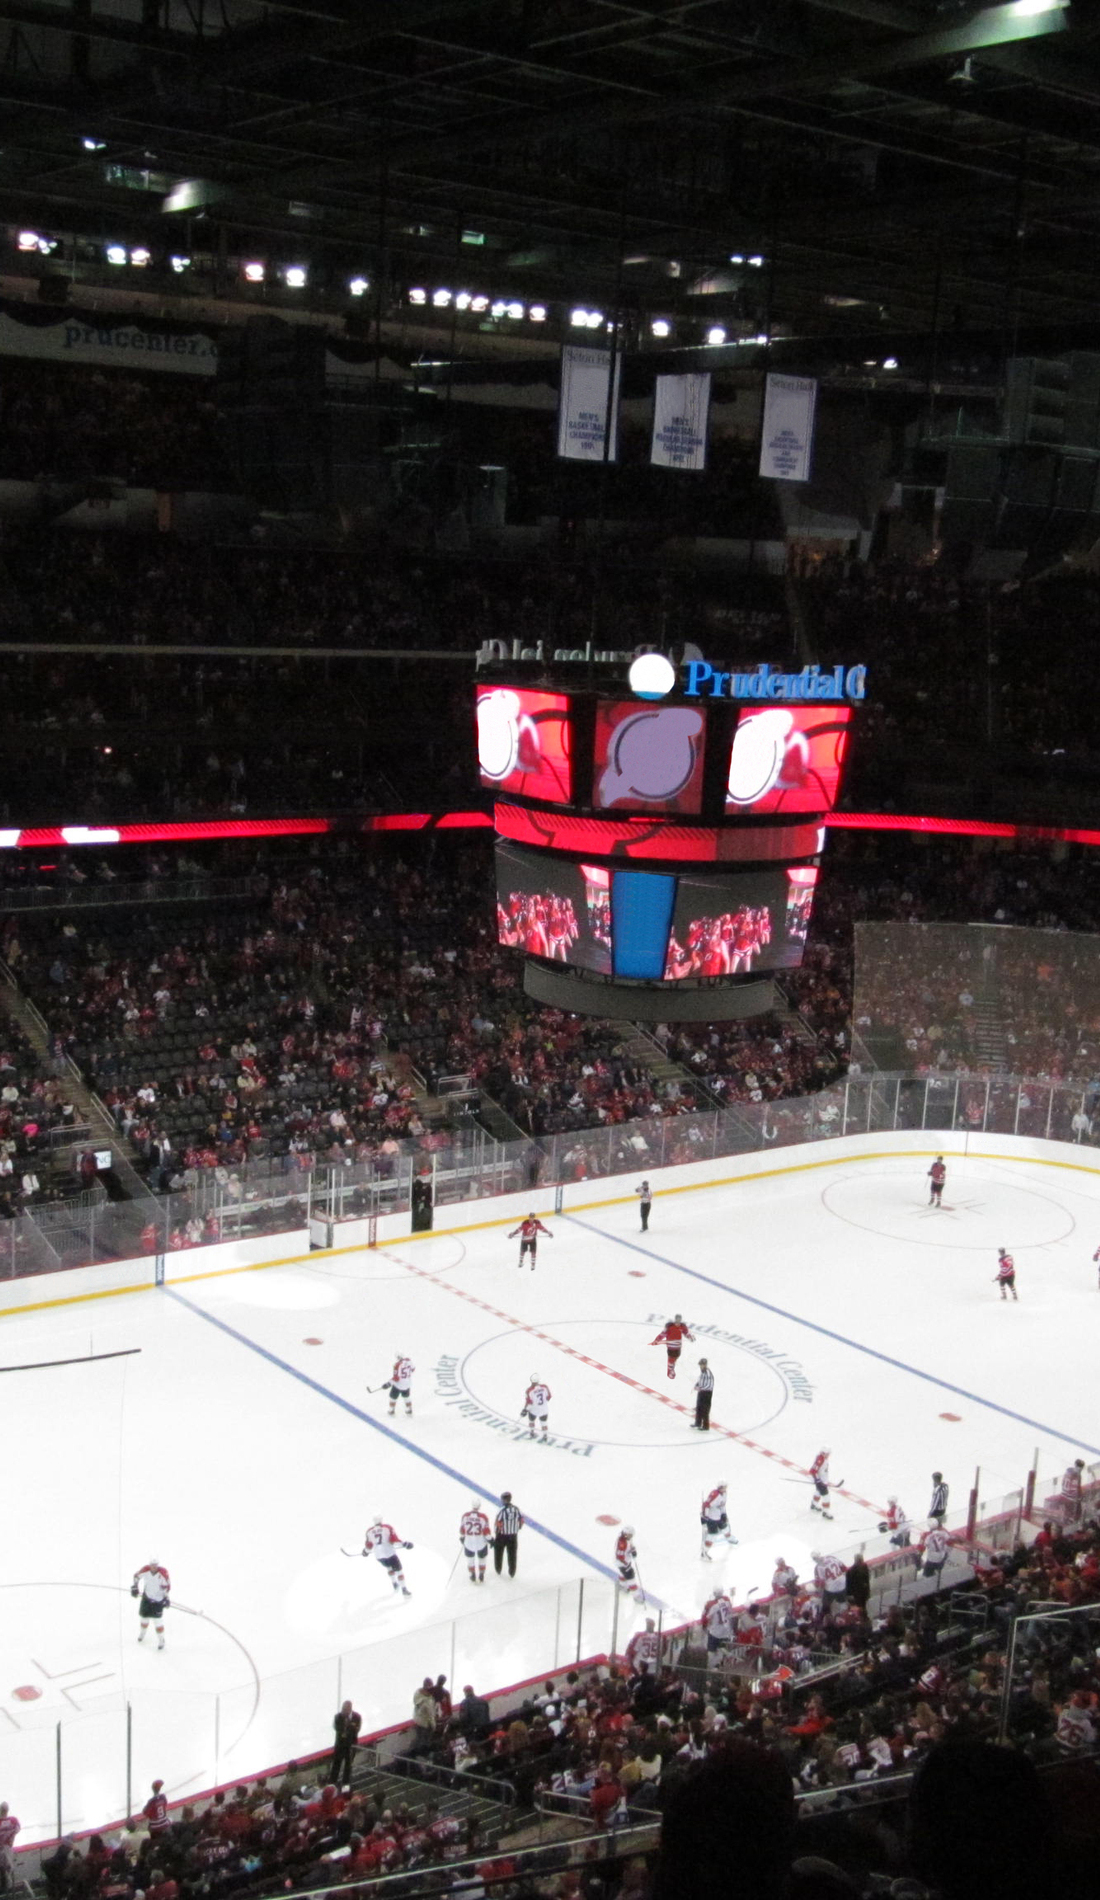 A New Jersey Devils live event